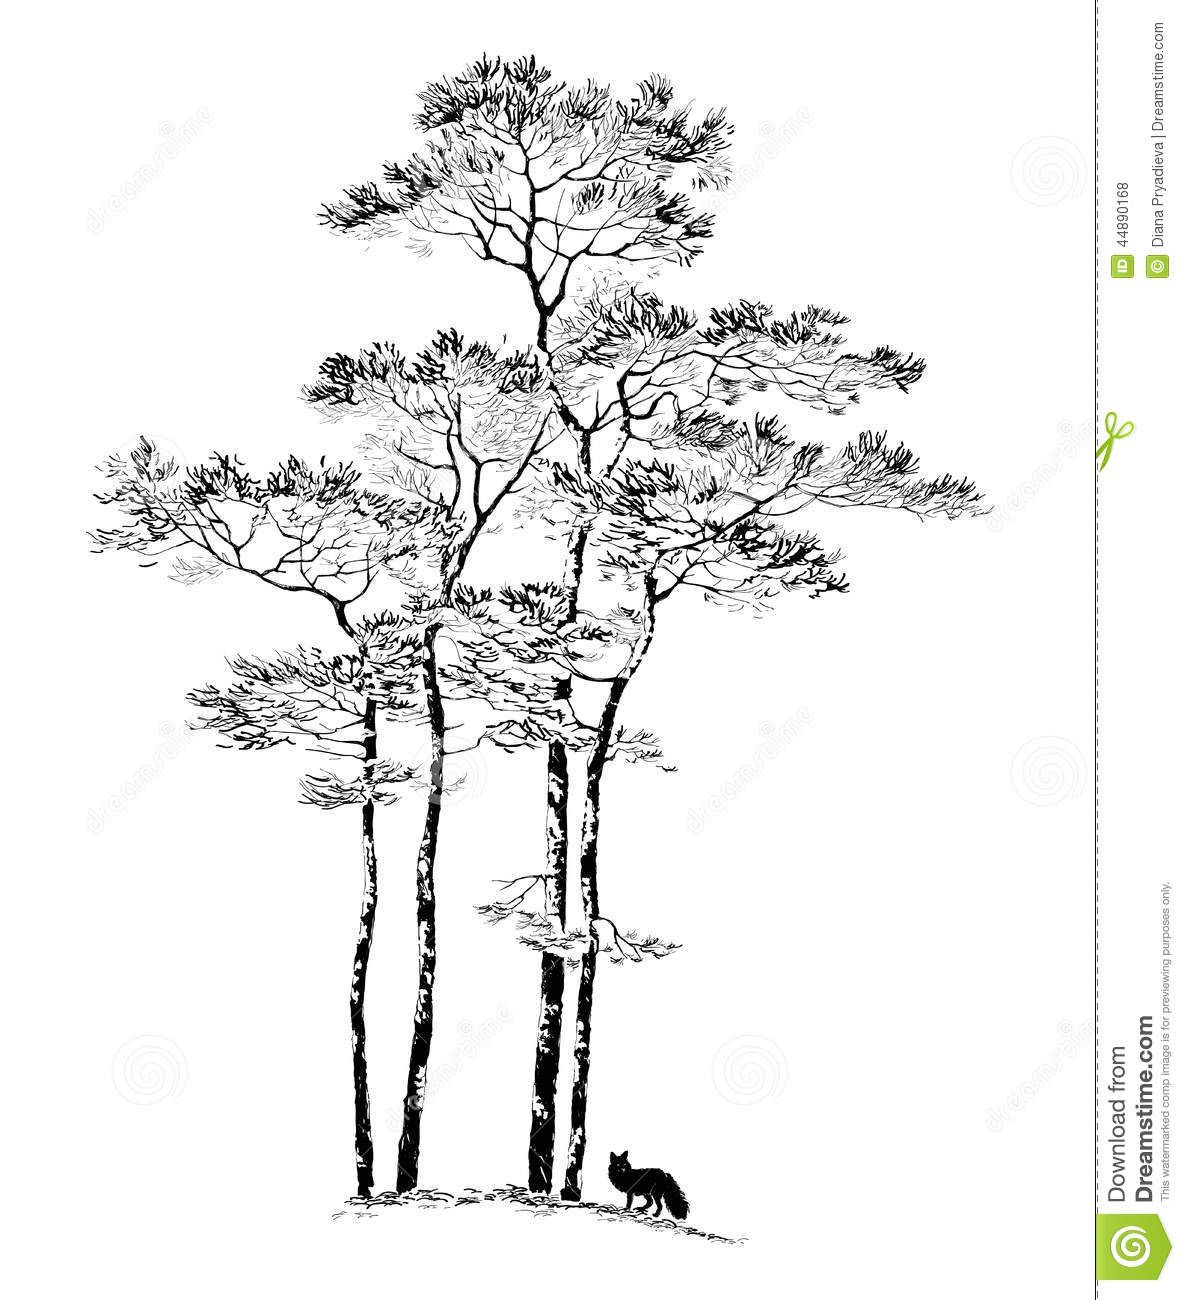 how to draw realistic pine trees tree sketch simple at paintingvalleycom explore pine trees to how draw realistic